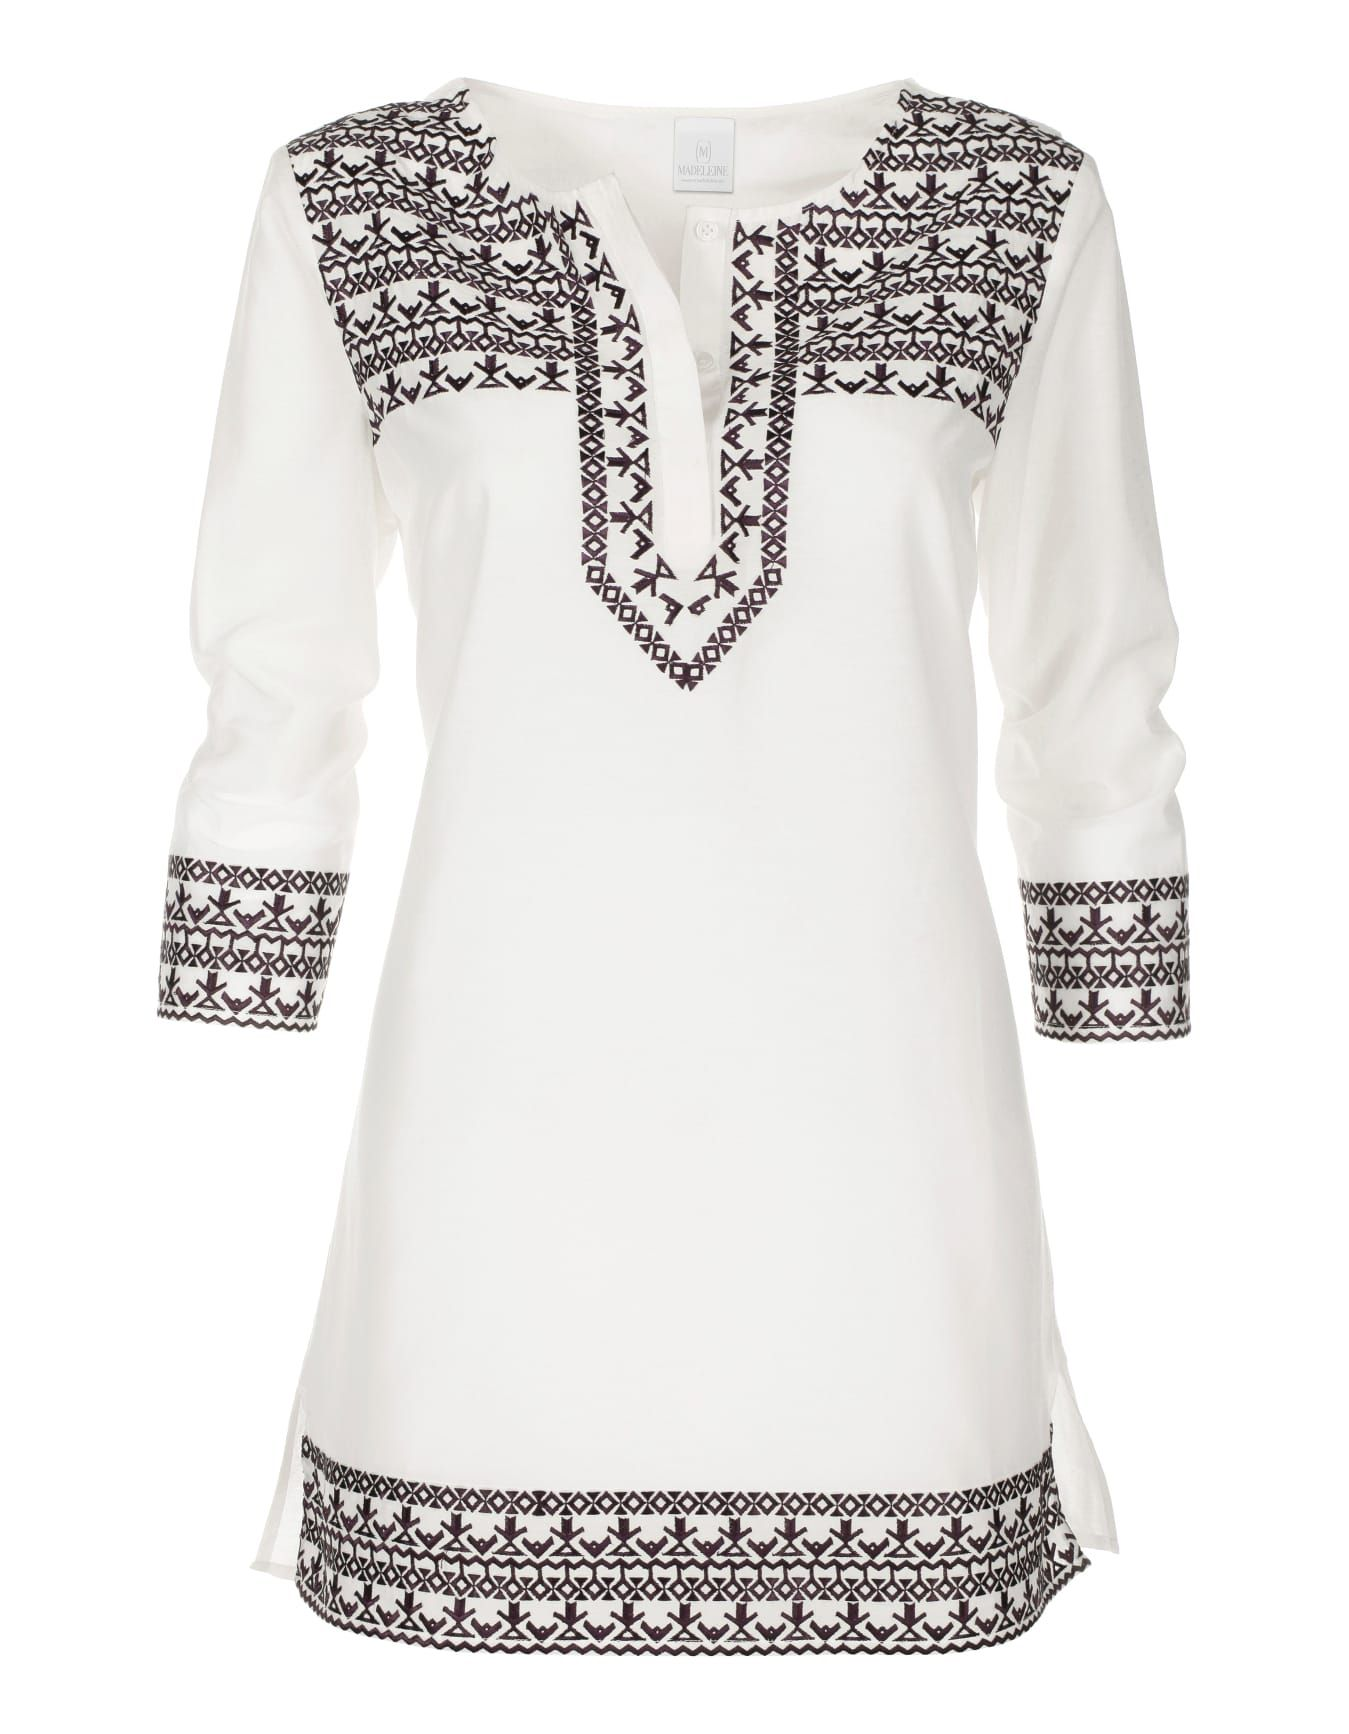 Casual ontrend tunic with folkloristic charm the intricate exotic